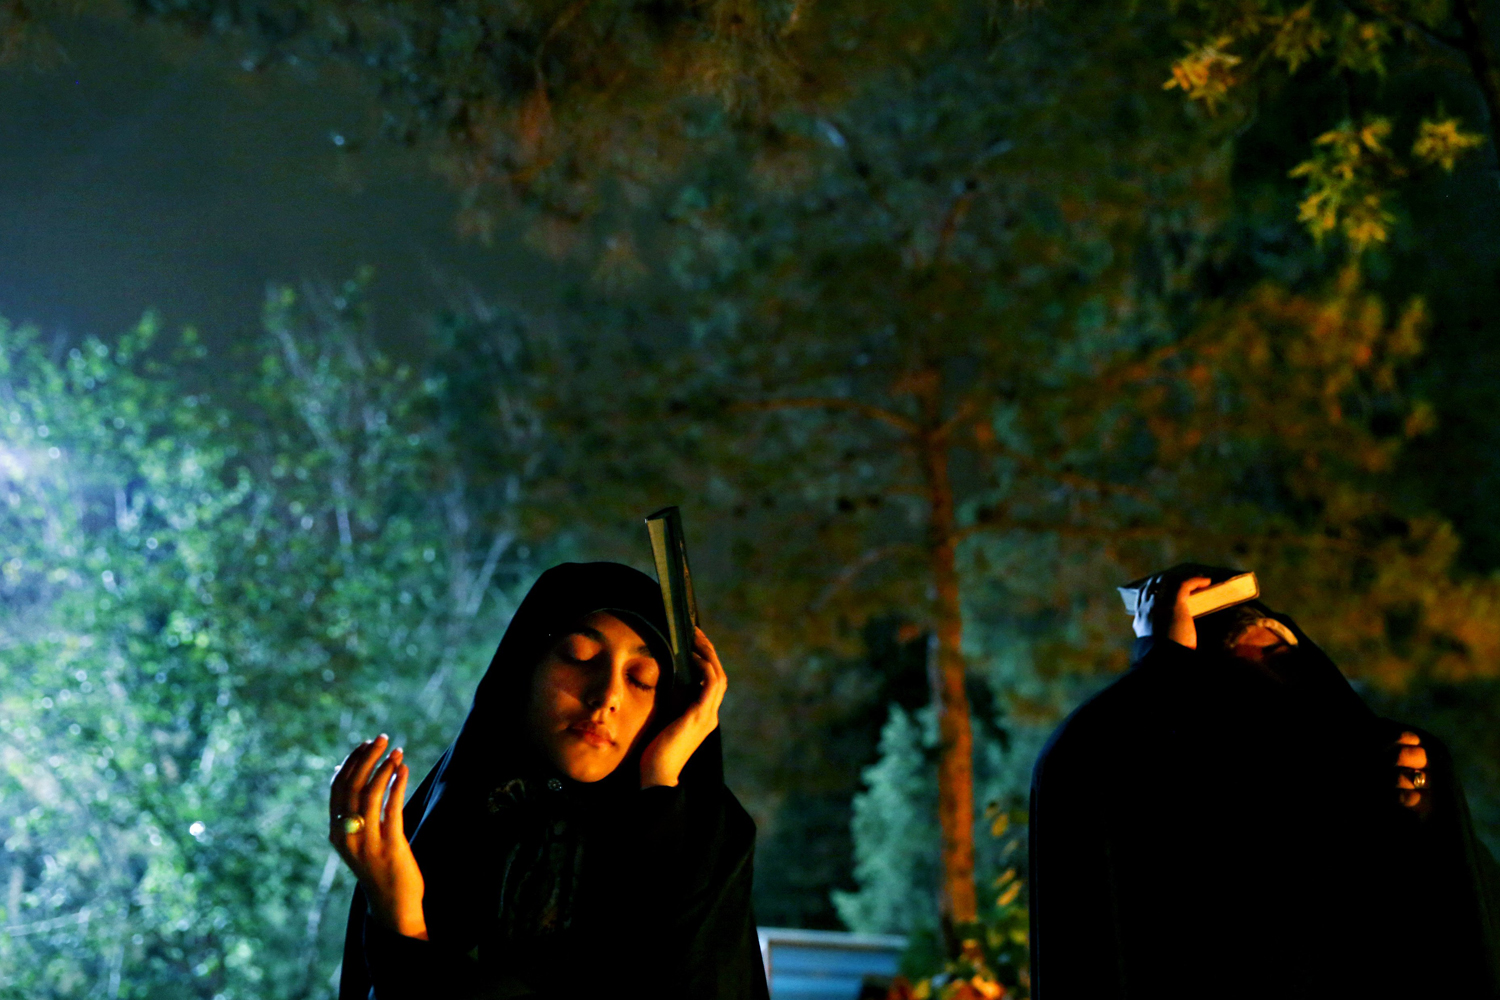 Jul. 19, 2014. Iranian Shiite Muslim women pray as they place the Quran, Islam's holy book, on their heads during a religious ceremony at the graves of soldiers who were killed during 1980-88 Iran-Iraq war, at the Behesht-e-Zahra cemetery, during the holy fasting month of Ramadan, just outside Tehran, Iran.